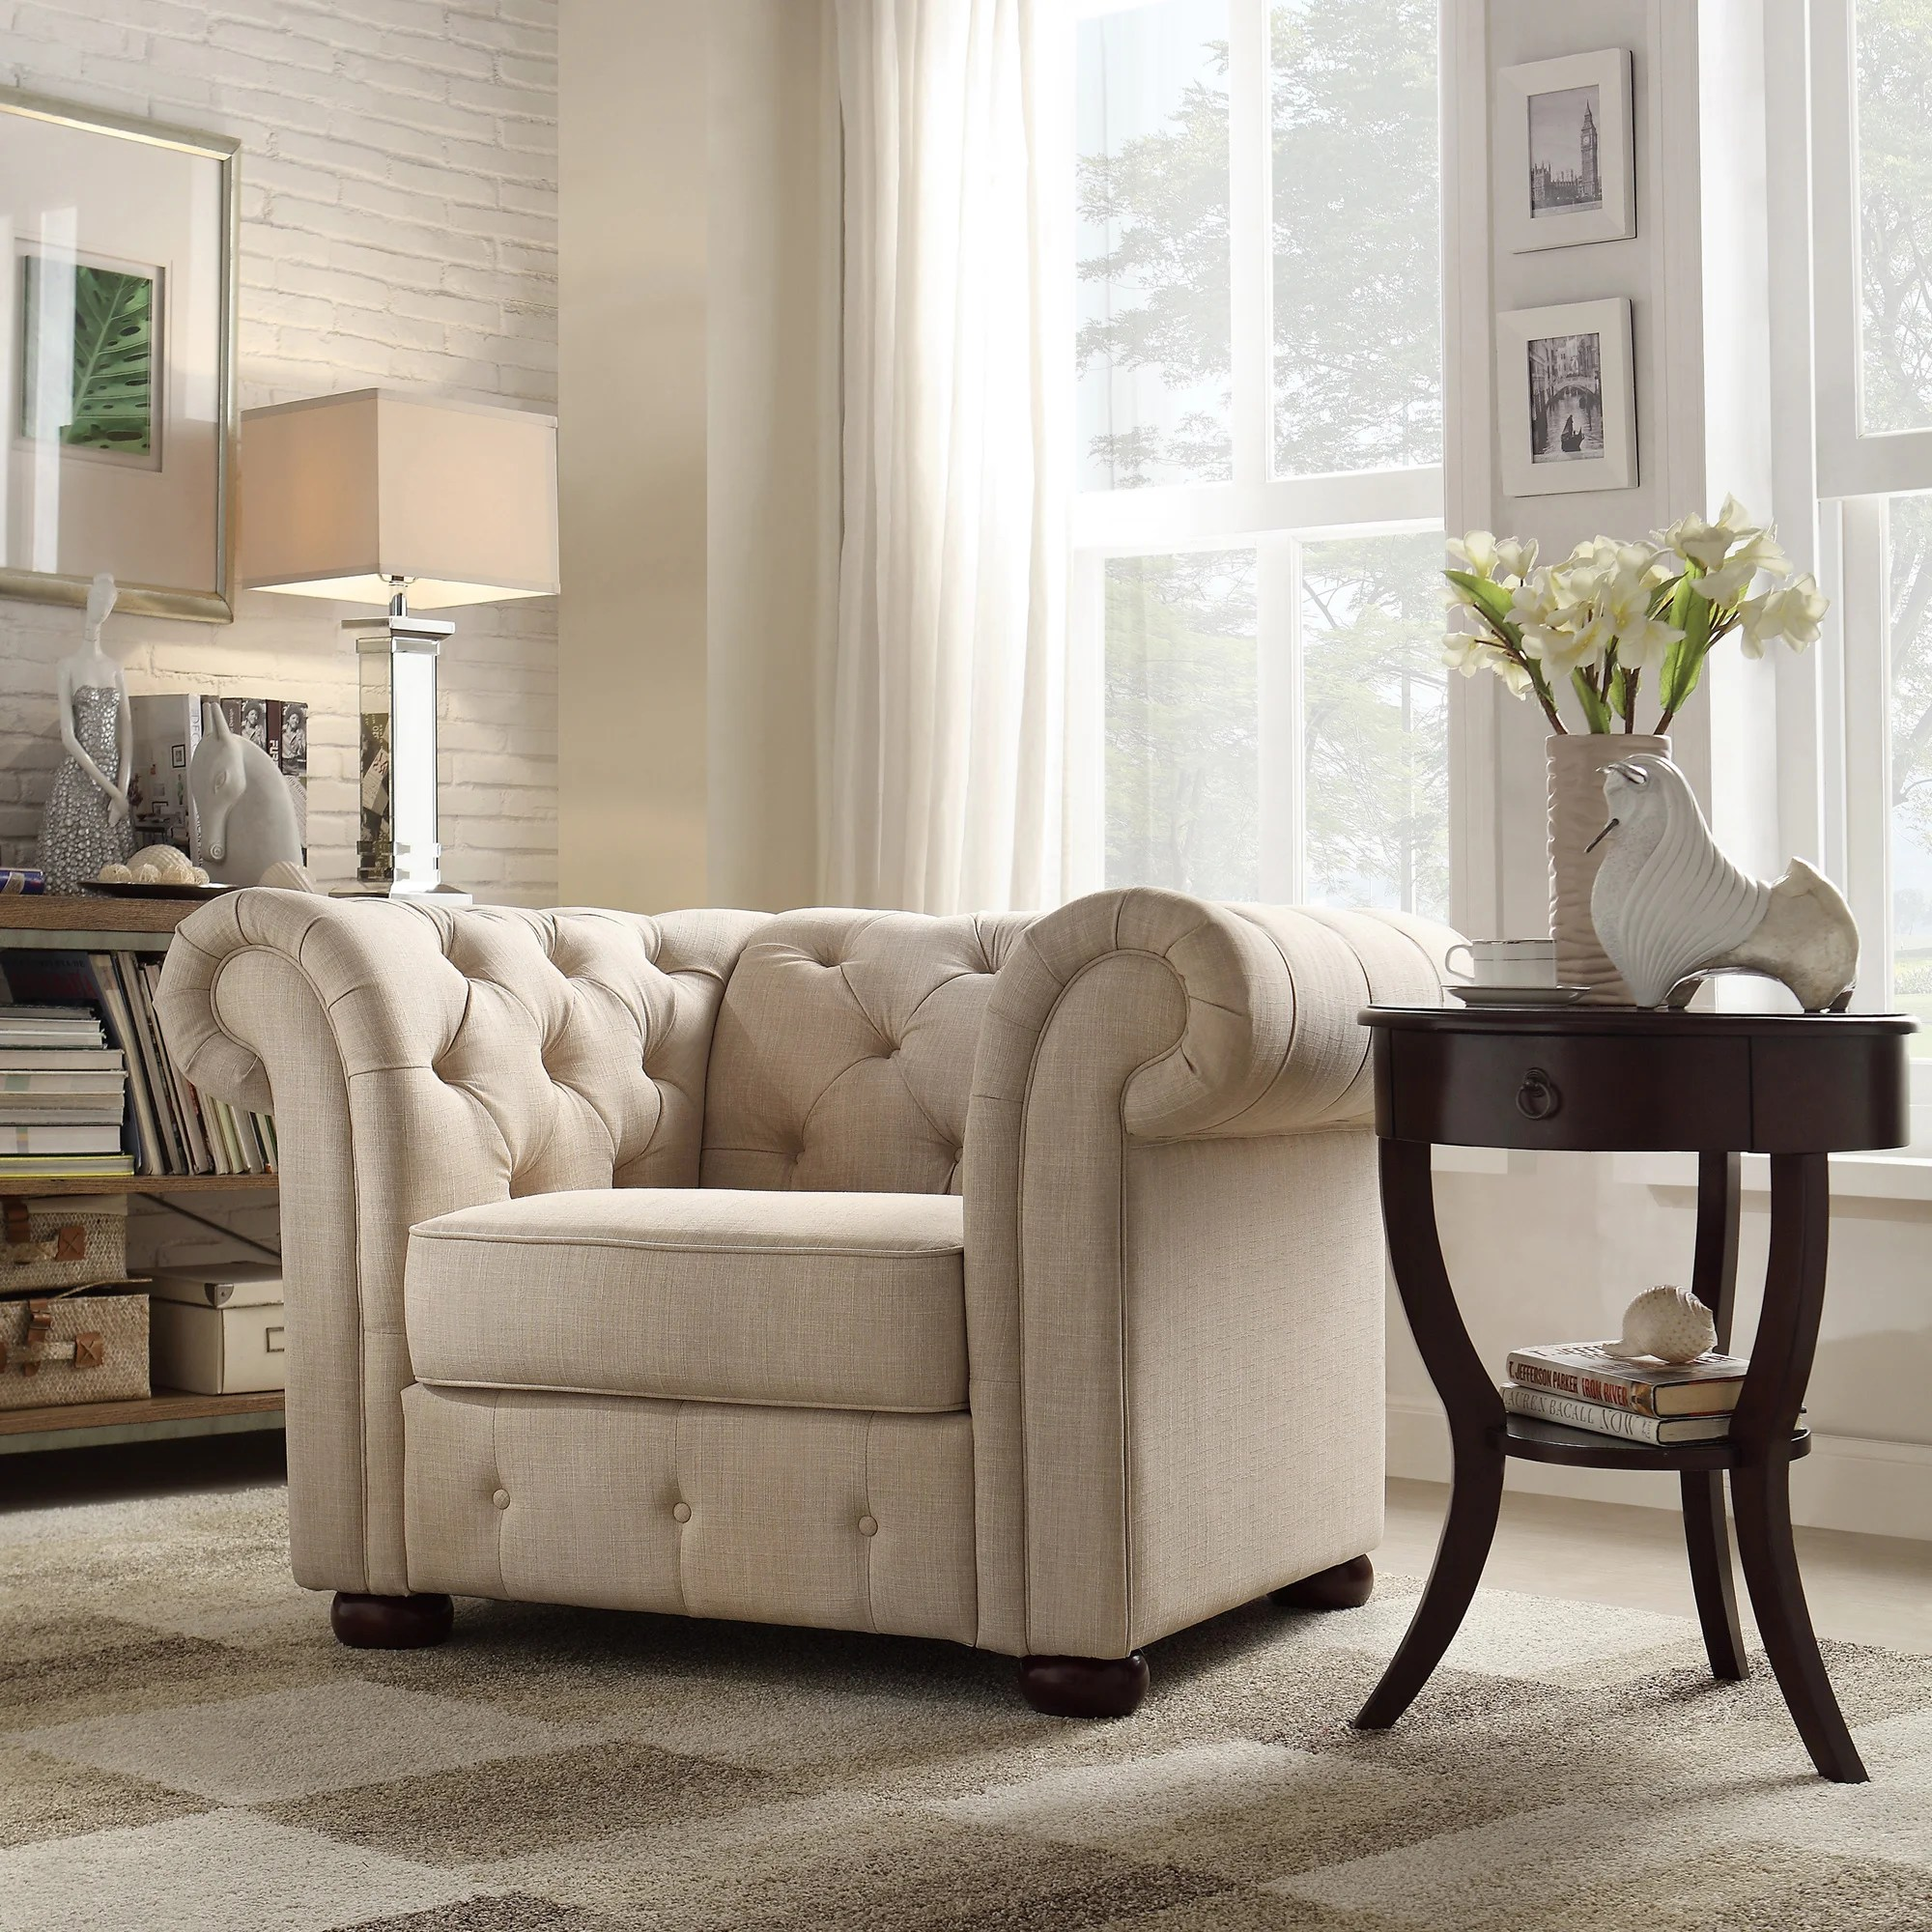 tribecca home knightsbridge beige linen tufted scroll arm chesterfield sofa craigslist sectional inland empire